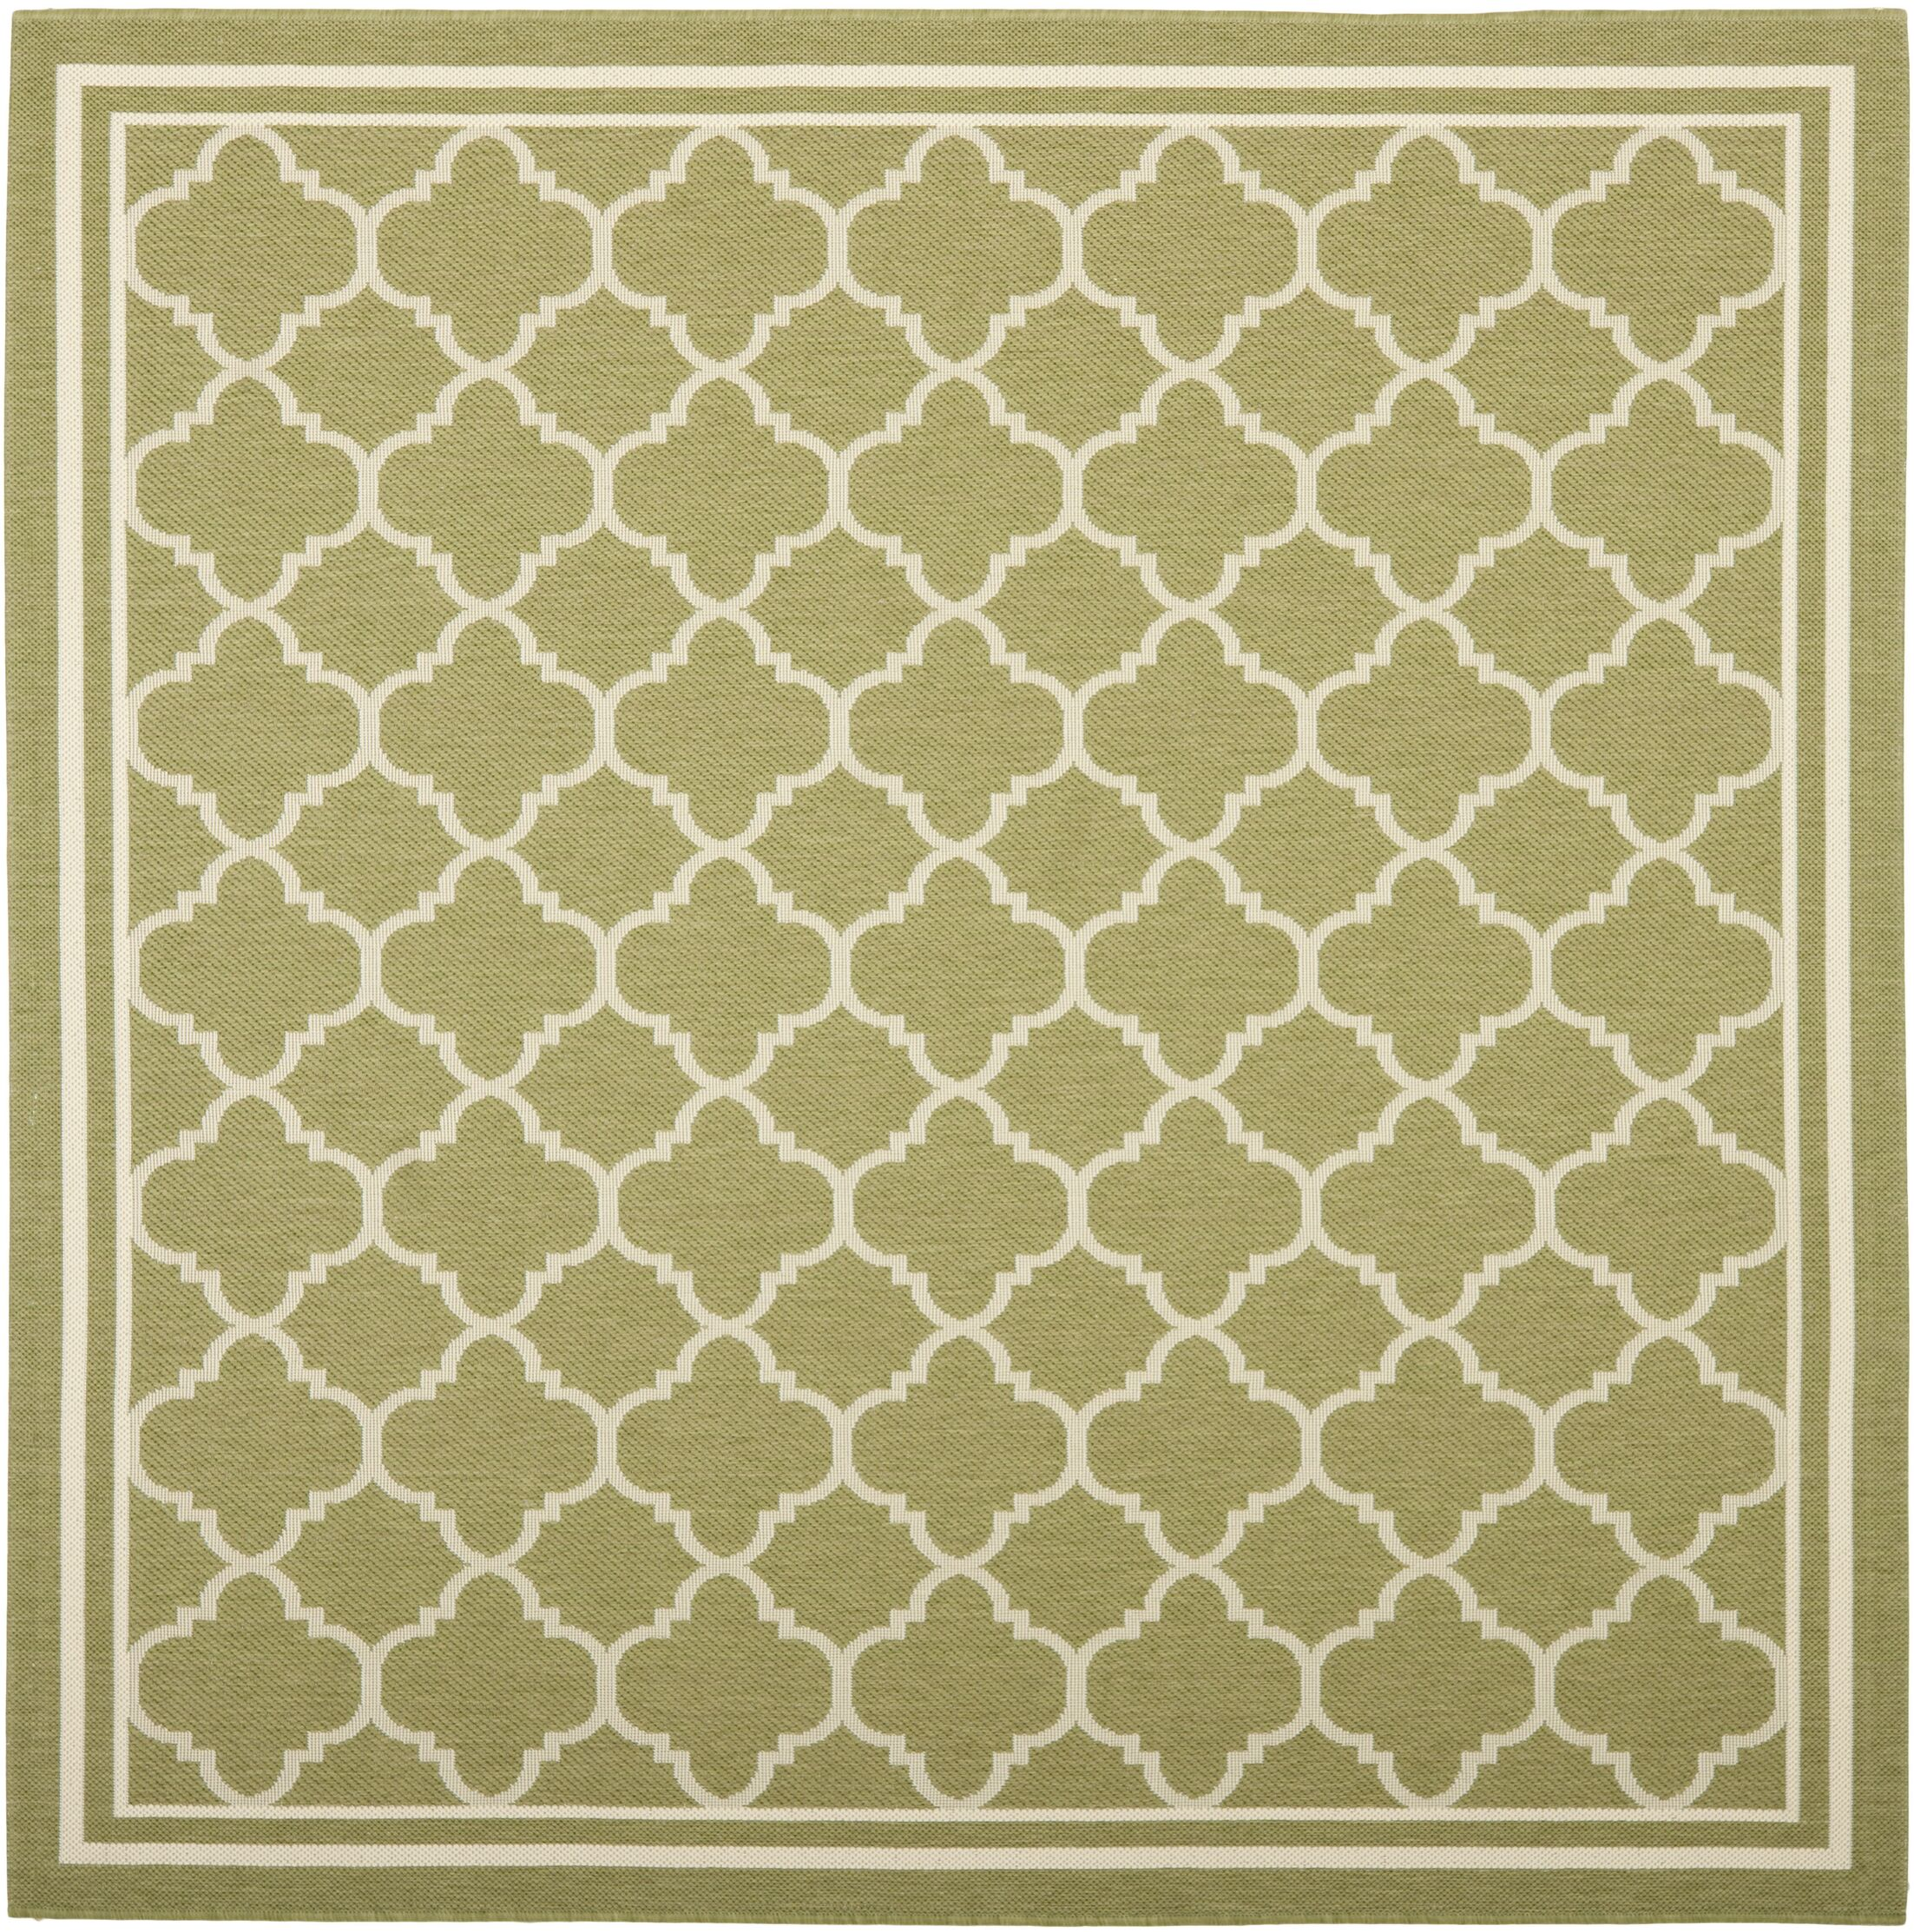 Short Green/Beige Indoor/Outdoor Area Rug Rug Size: Square 7'10